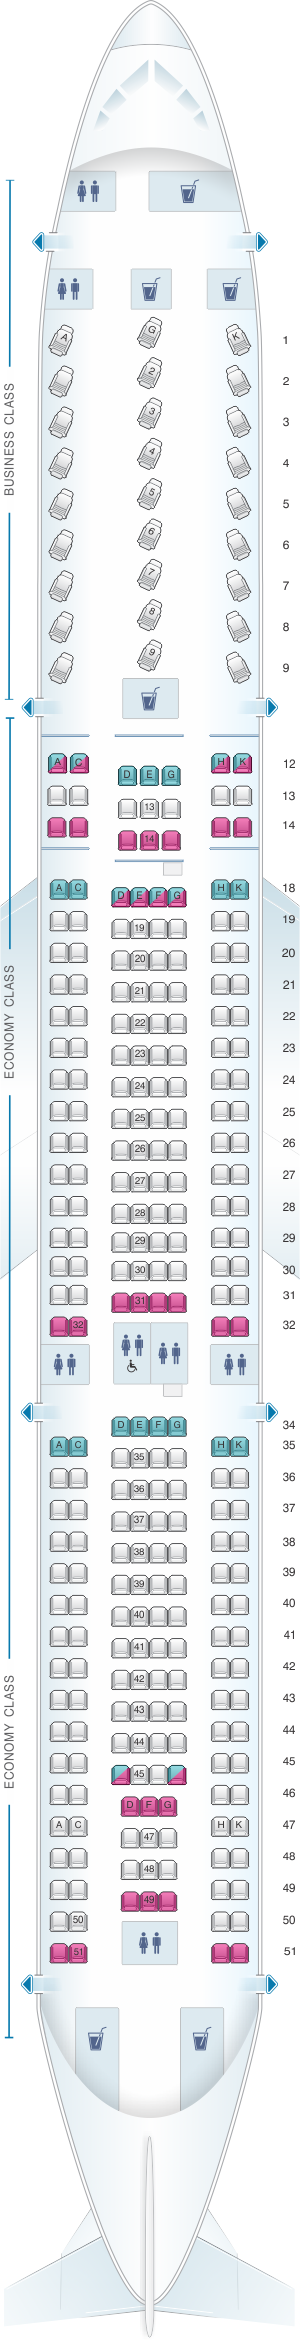 Seat map for Air Canada Airbus A330 300 North America